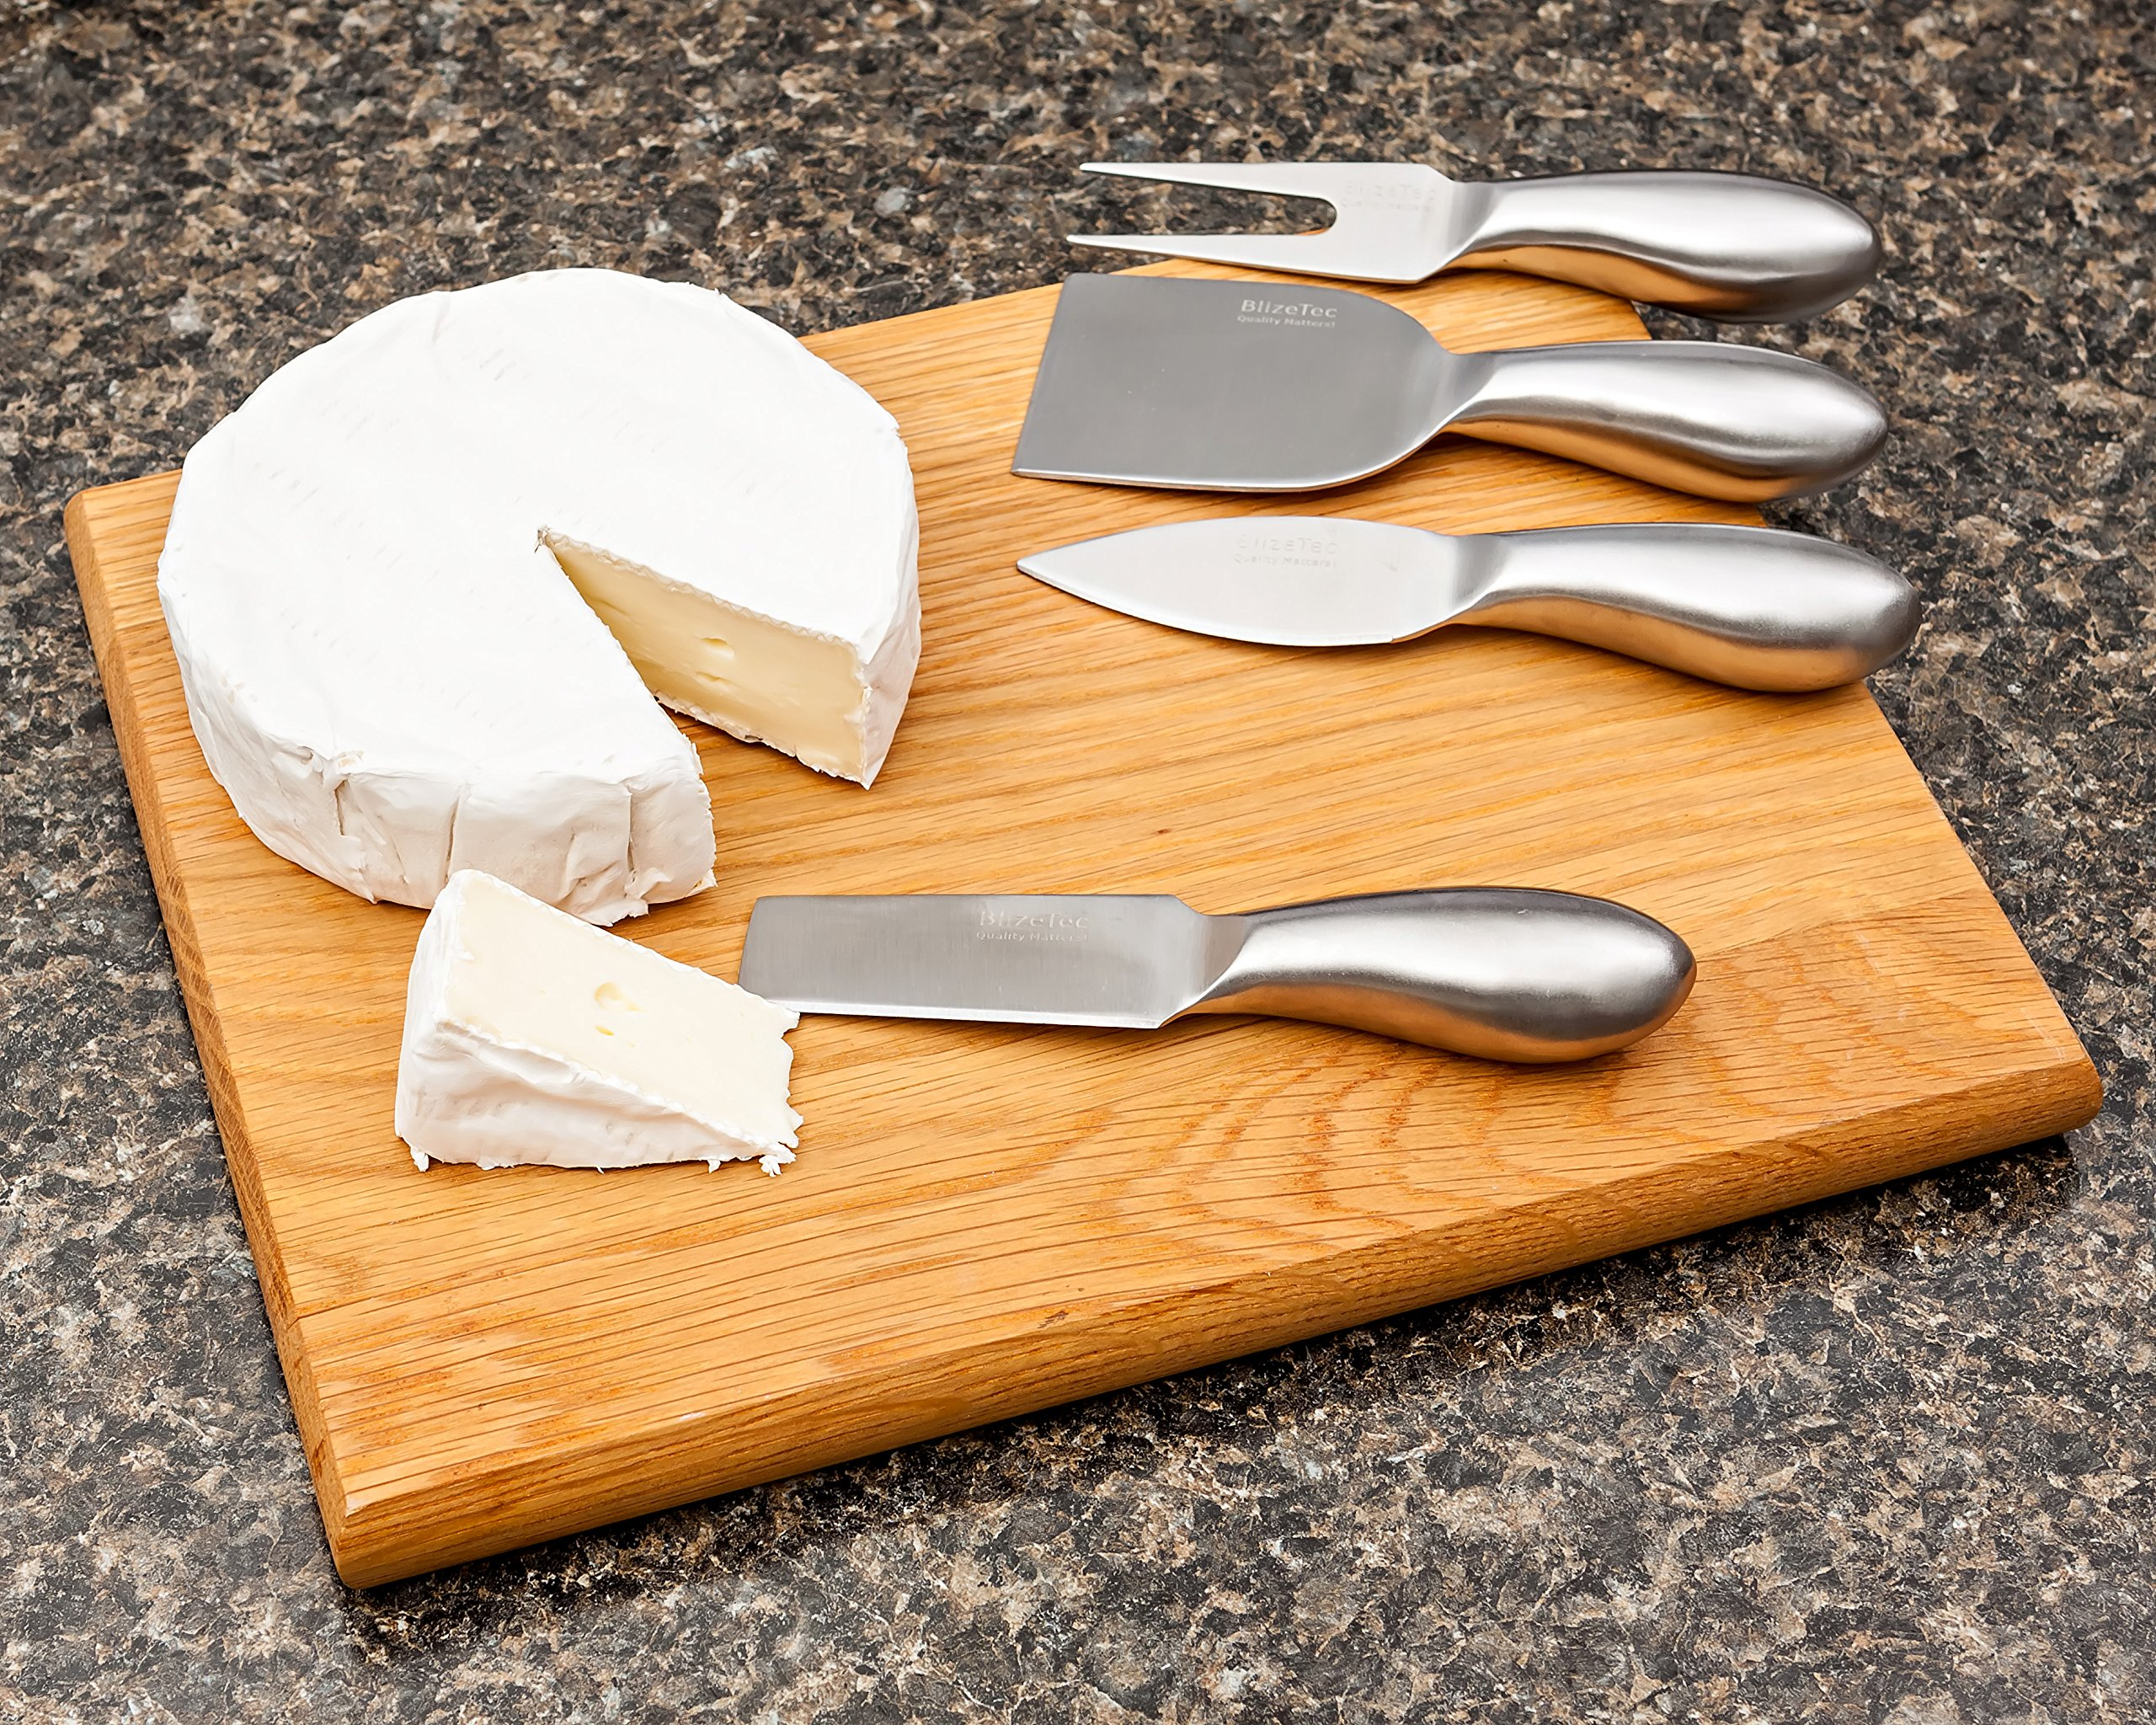 Cheese Knives: BlizeTec Cheese Slicer & Cutter Set (4 pcs) by BlizeTec (Image #2)